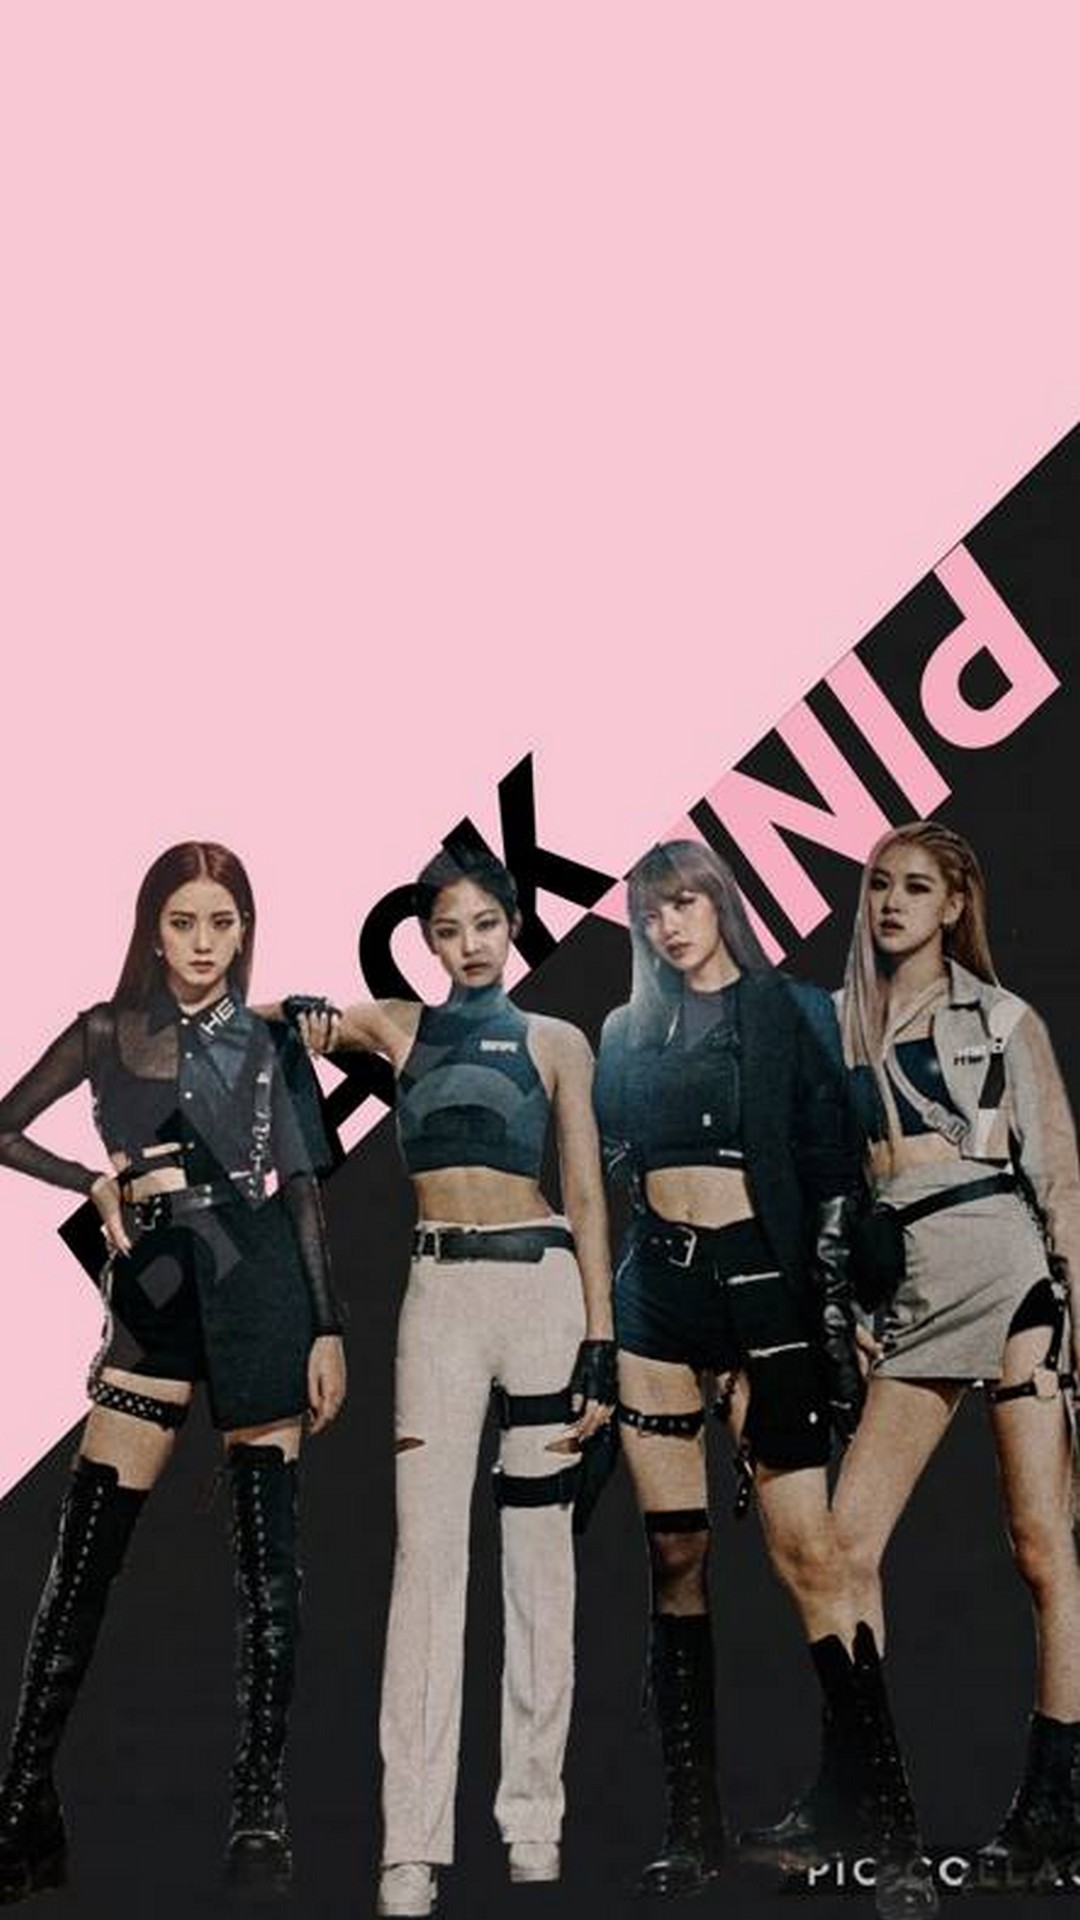 Blackpink Hd Wallpaper Posted By Christopher Simpson